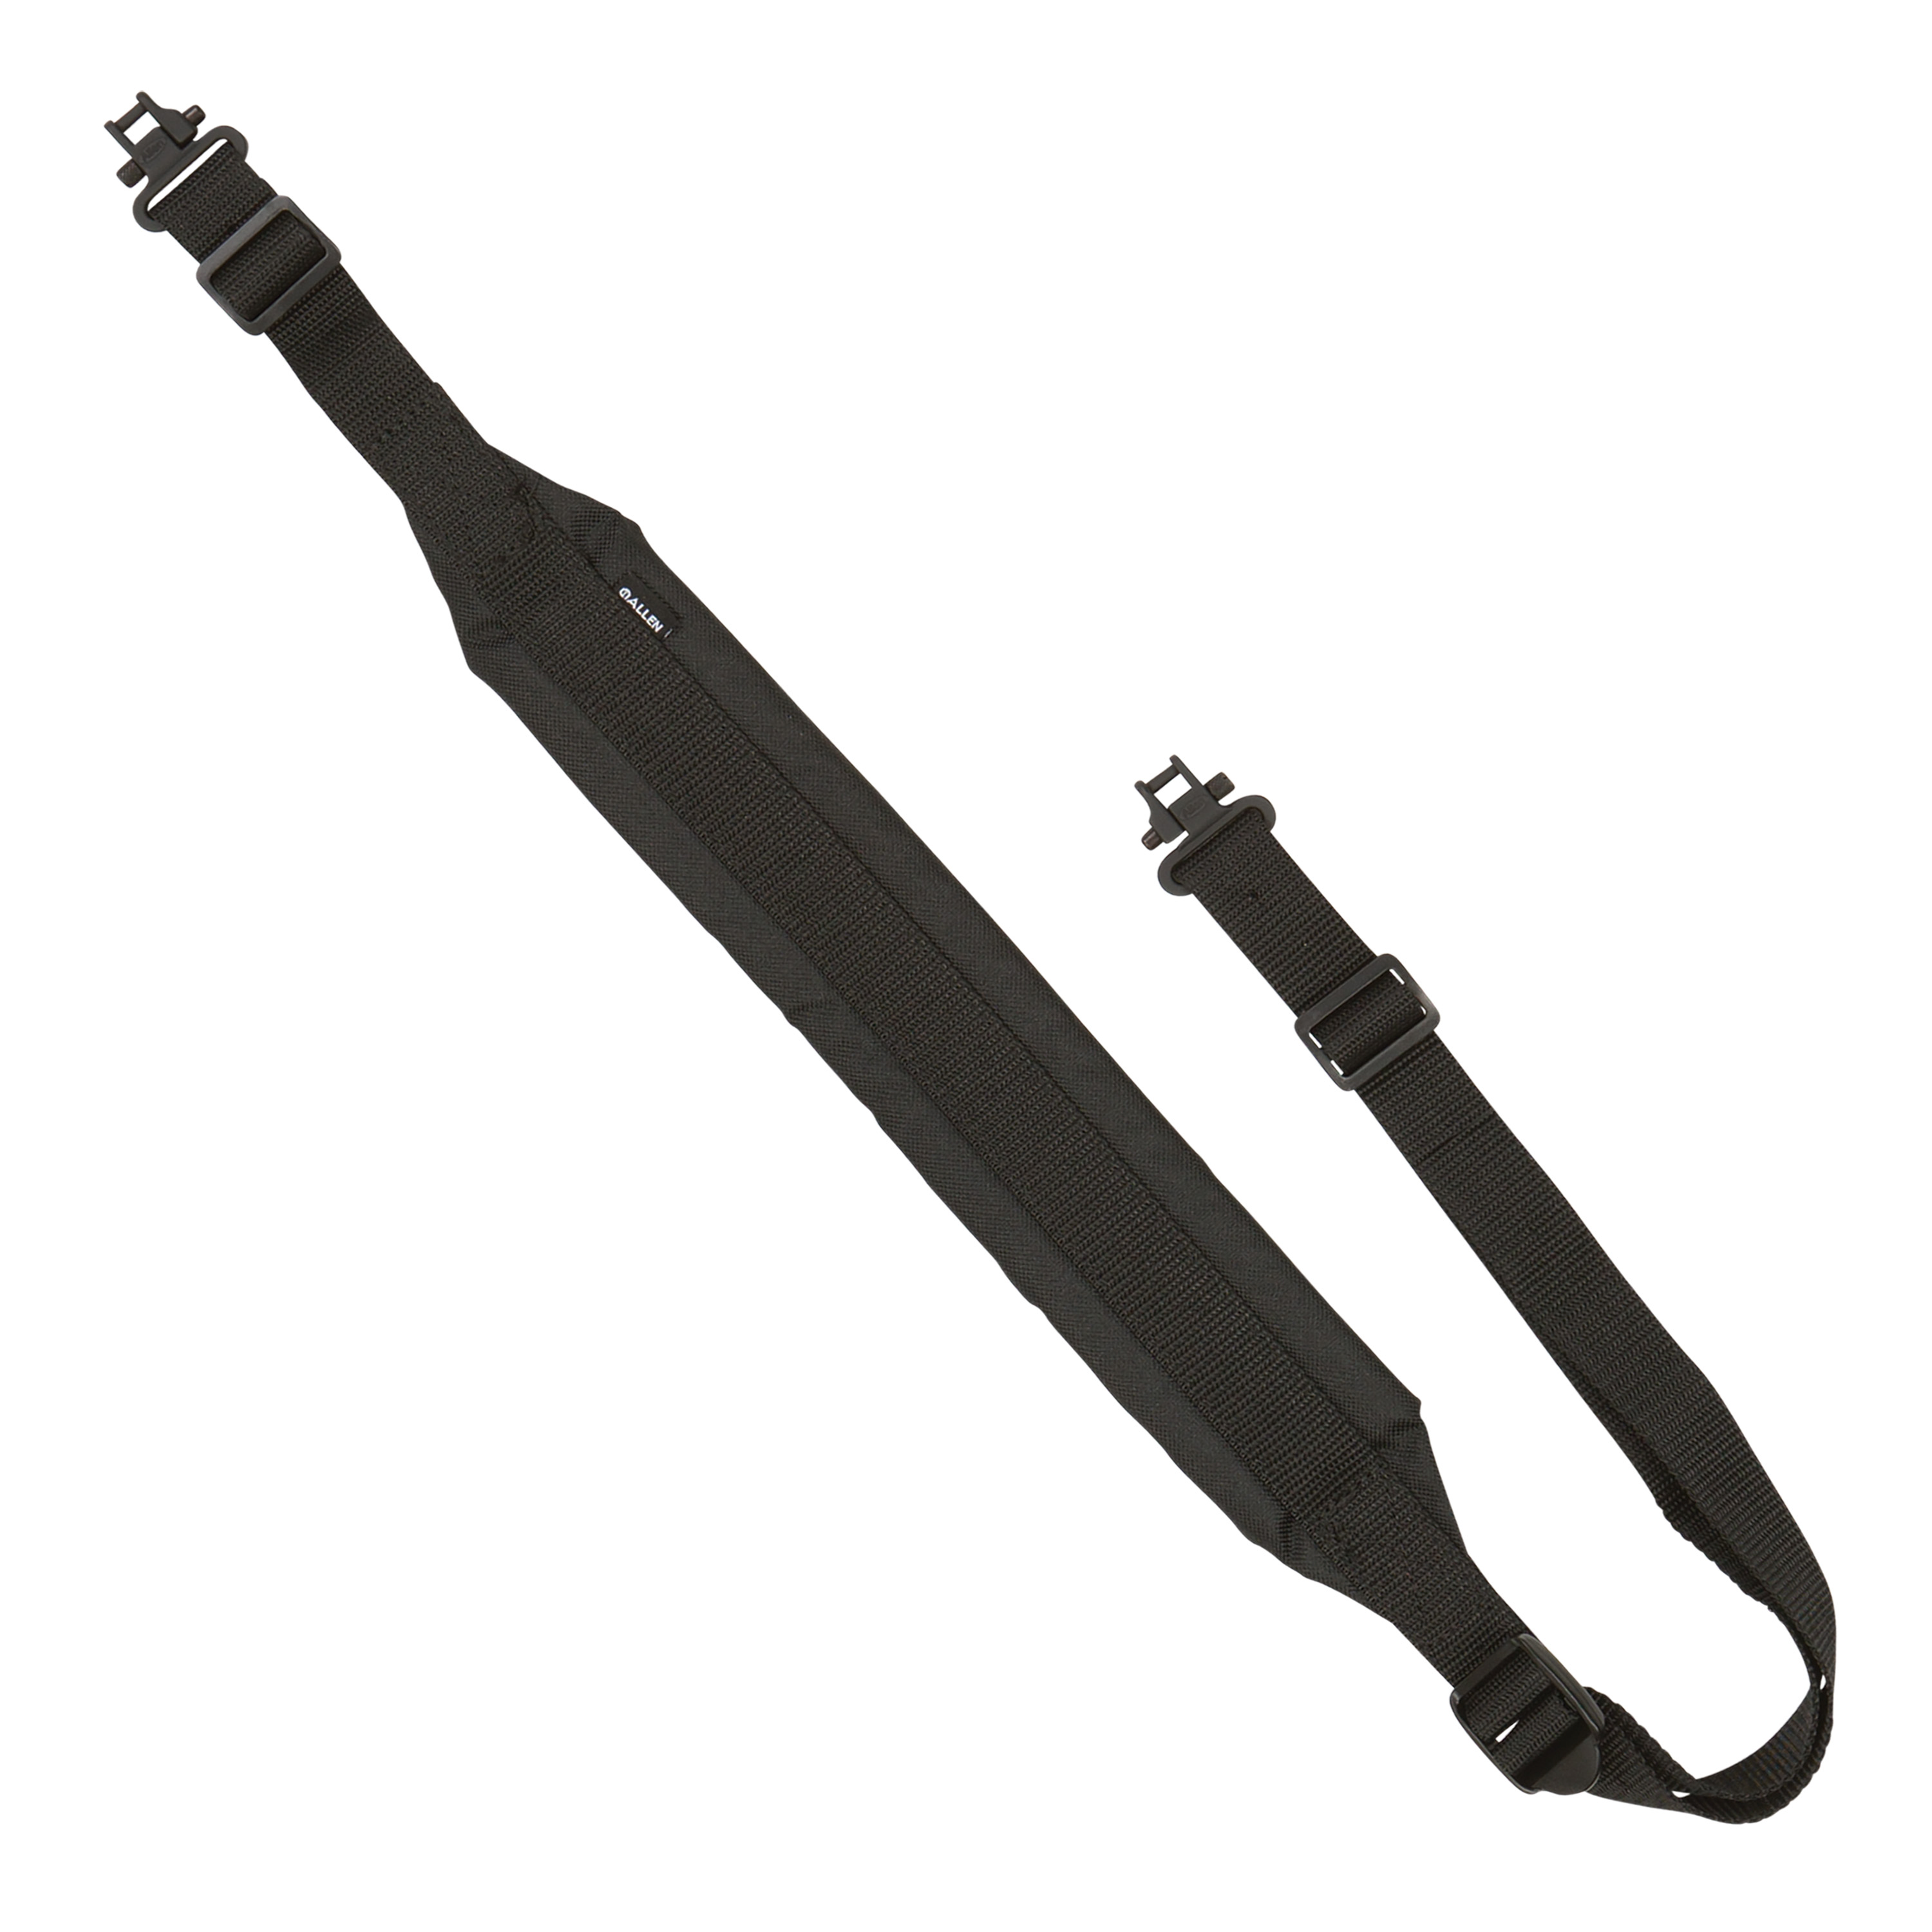 Endura Rifle Sling with Swivels, Black